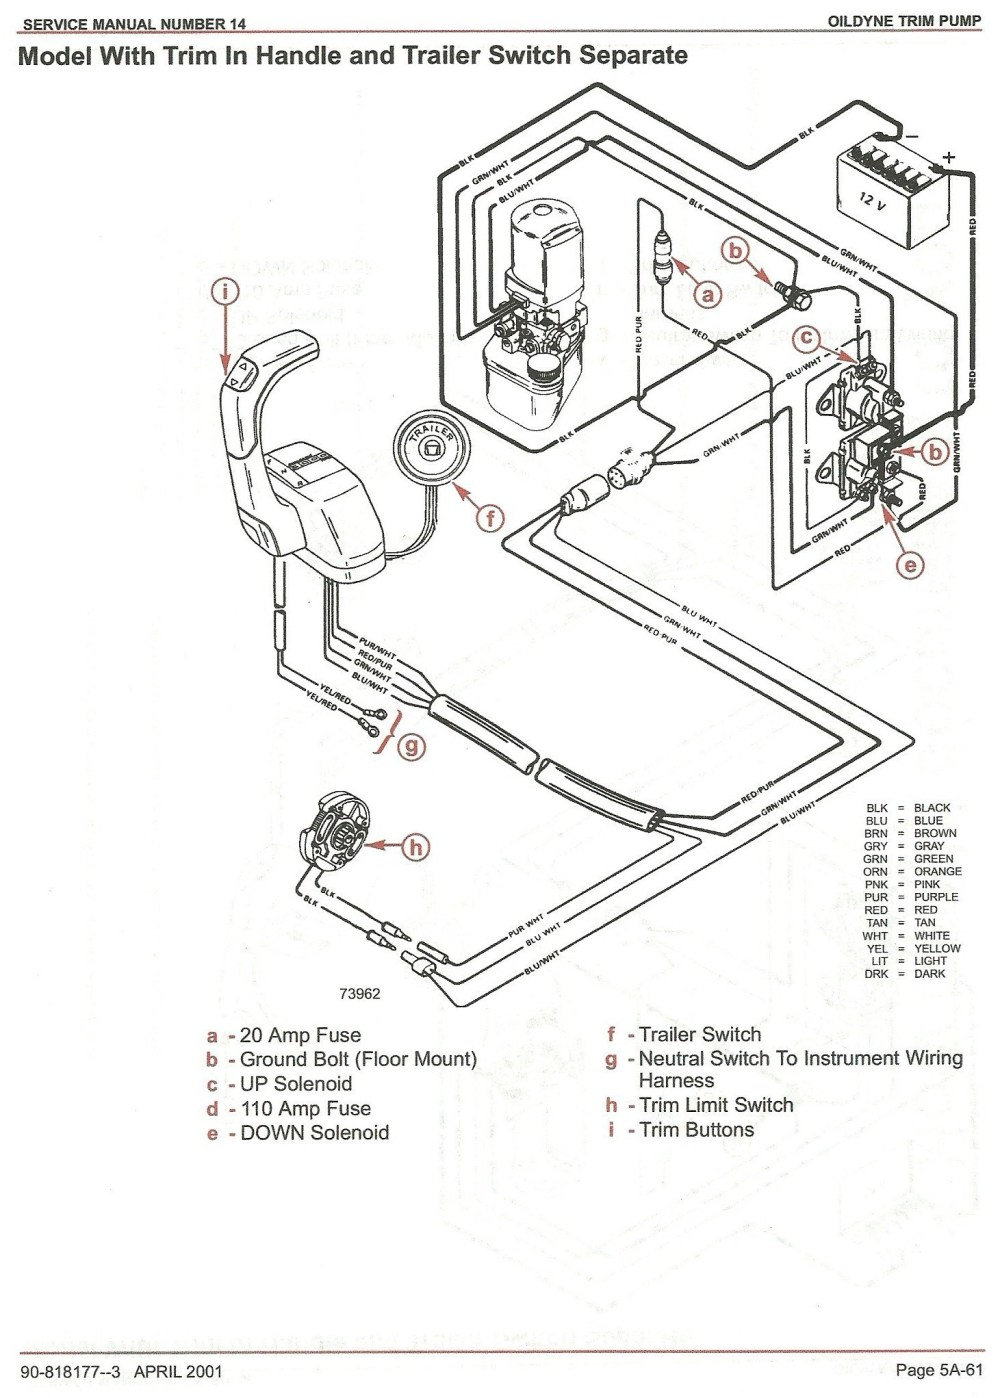 medium resolution of evinrude trim gauge wiring diagram wiring diagram for you johnson 150 outboard motor diagram tilt and trim switch wiring diagram